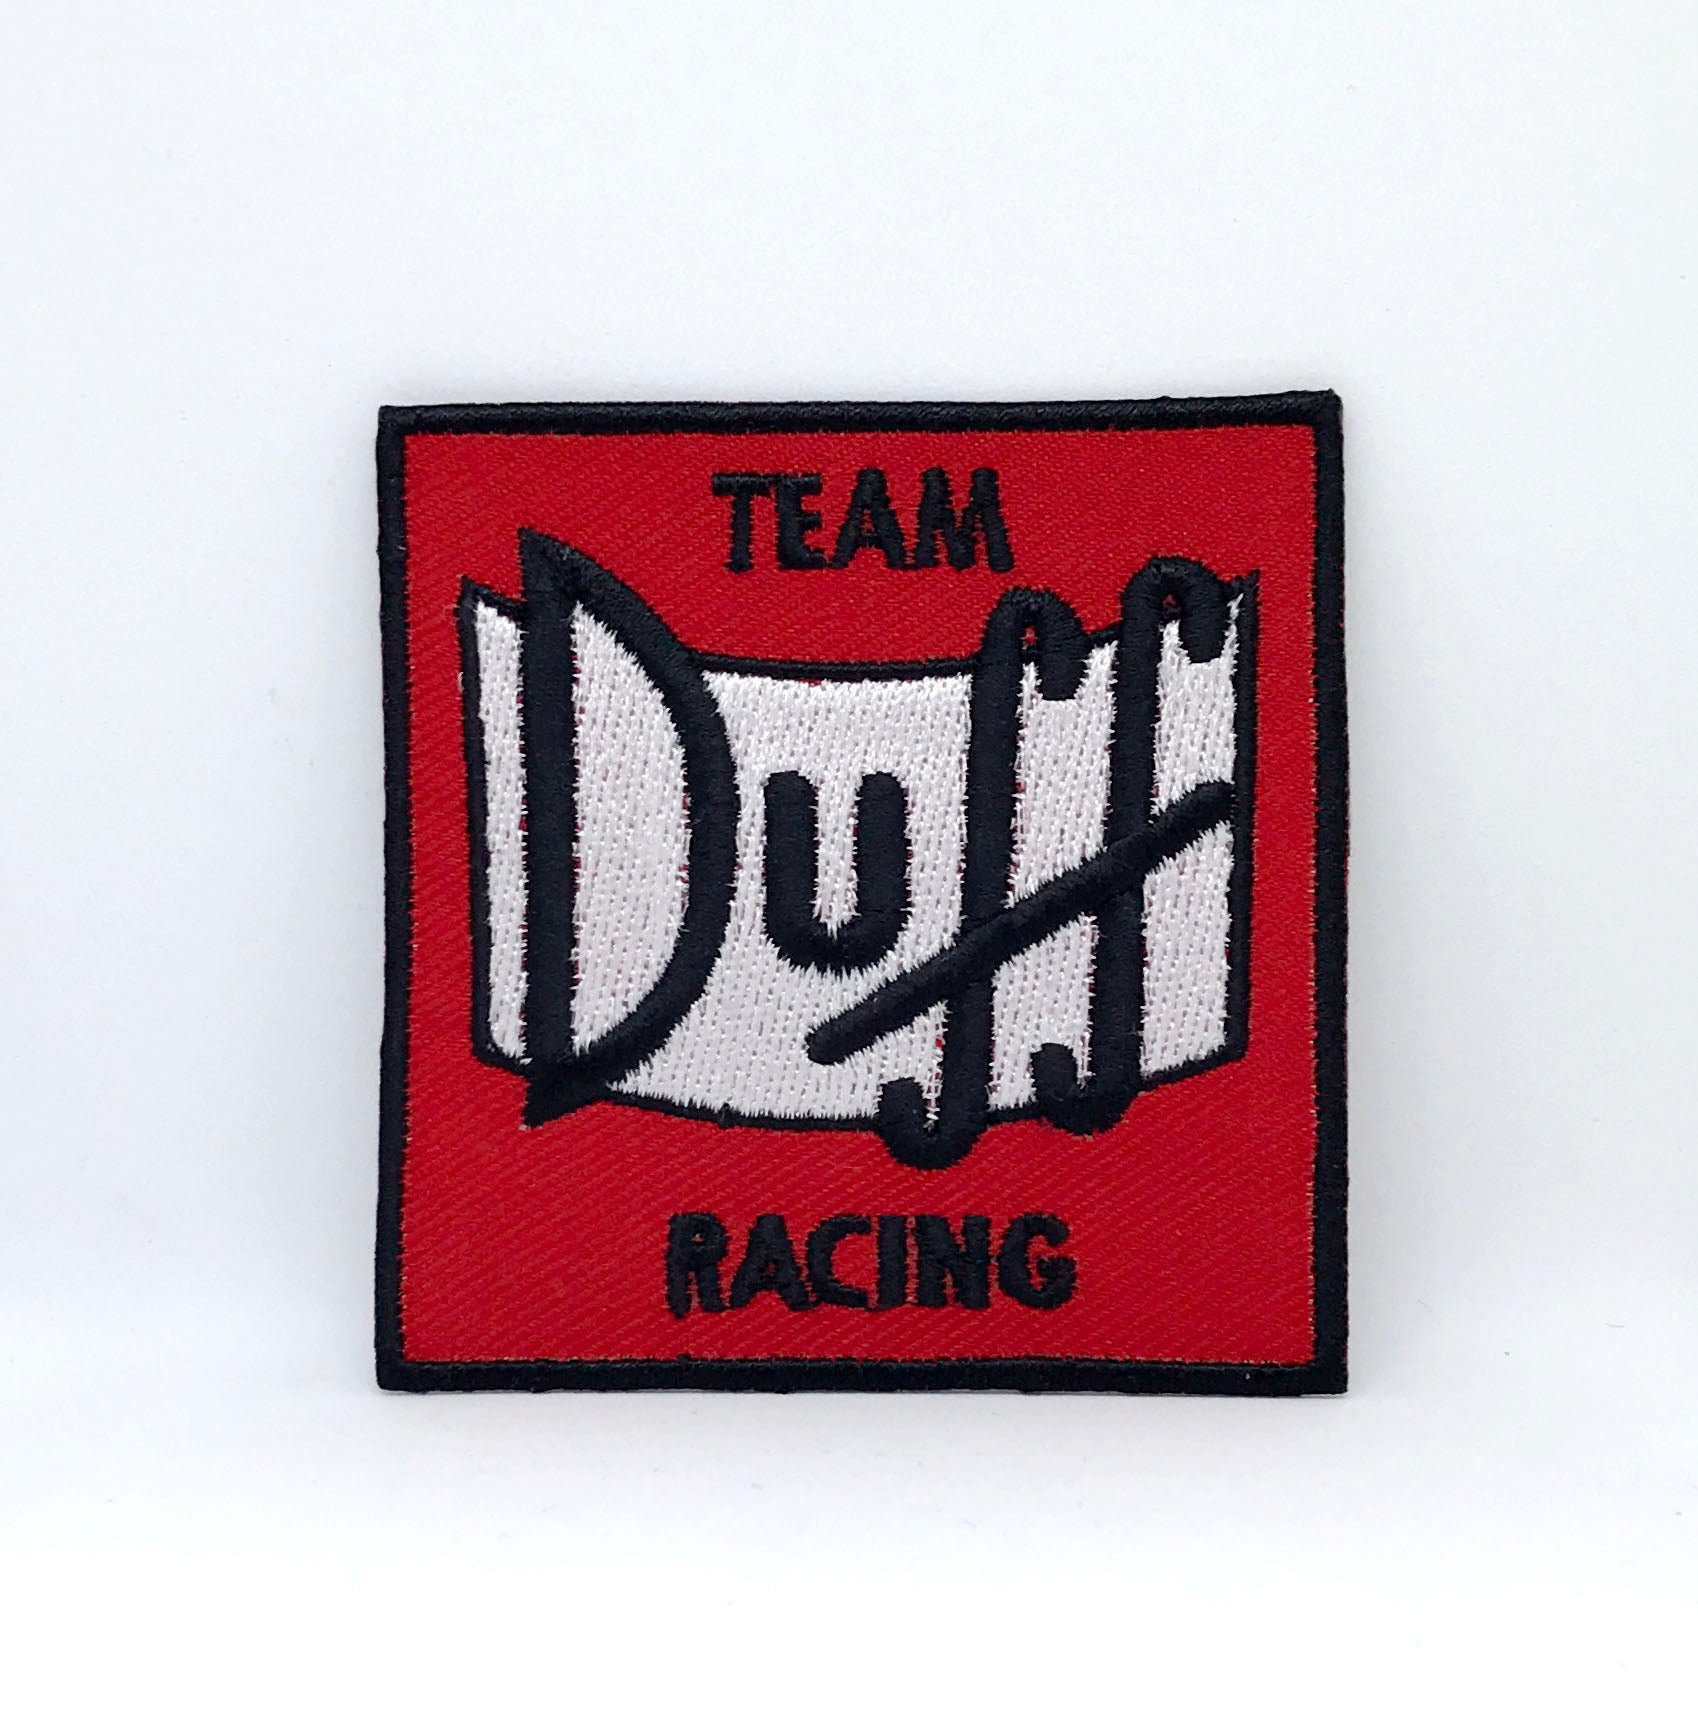 THE SIMPSONS TEAM DUFF RACING Iron Sew on Embroidered Patch